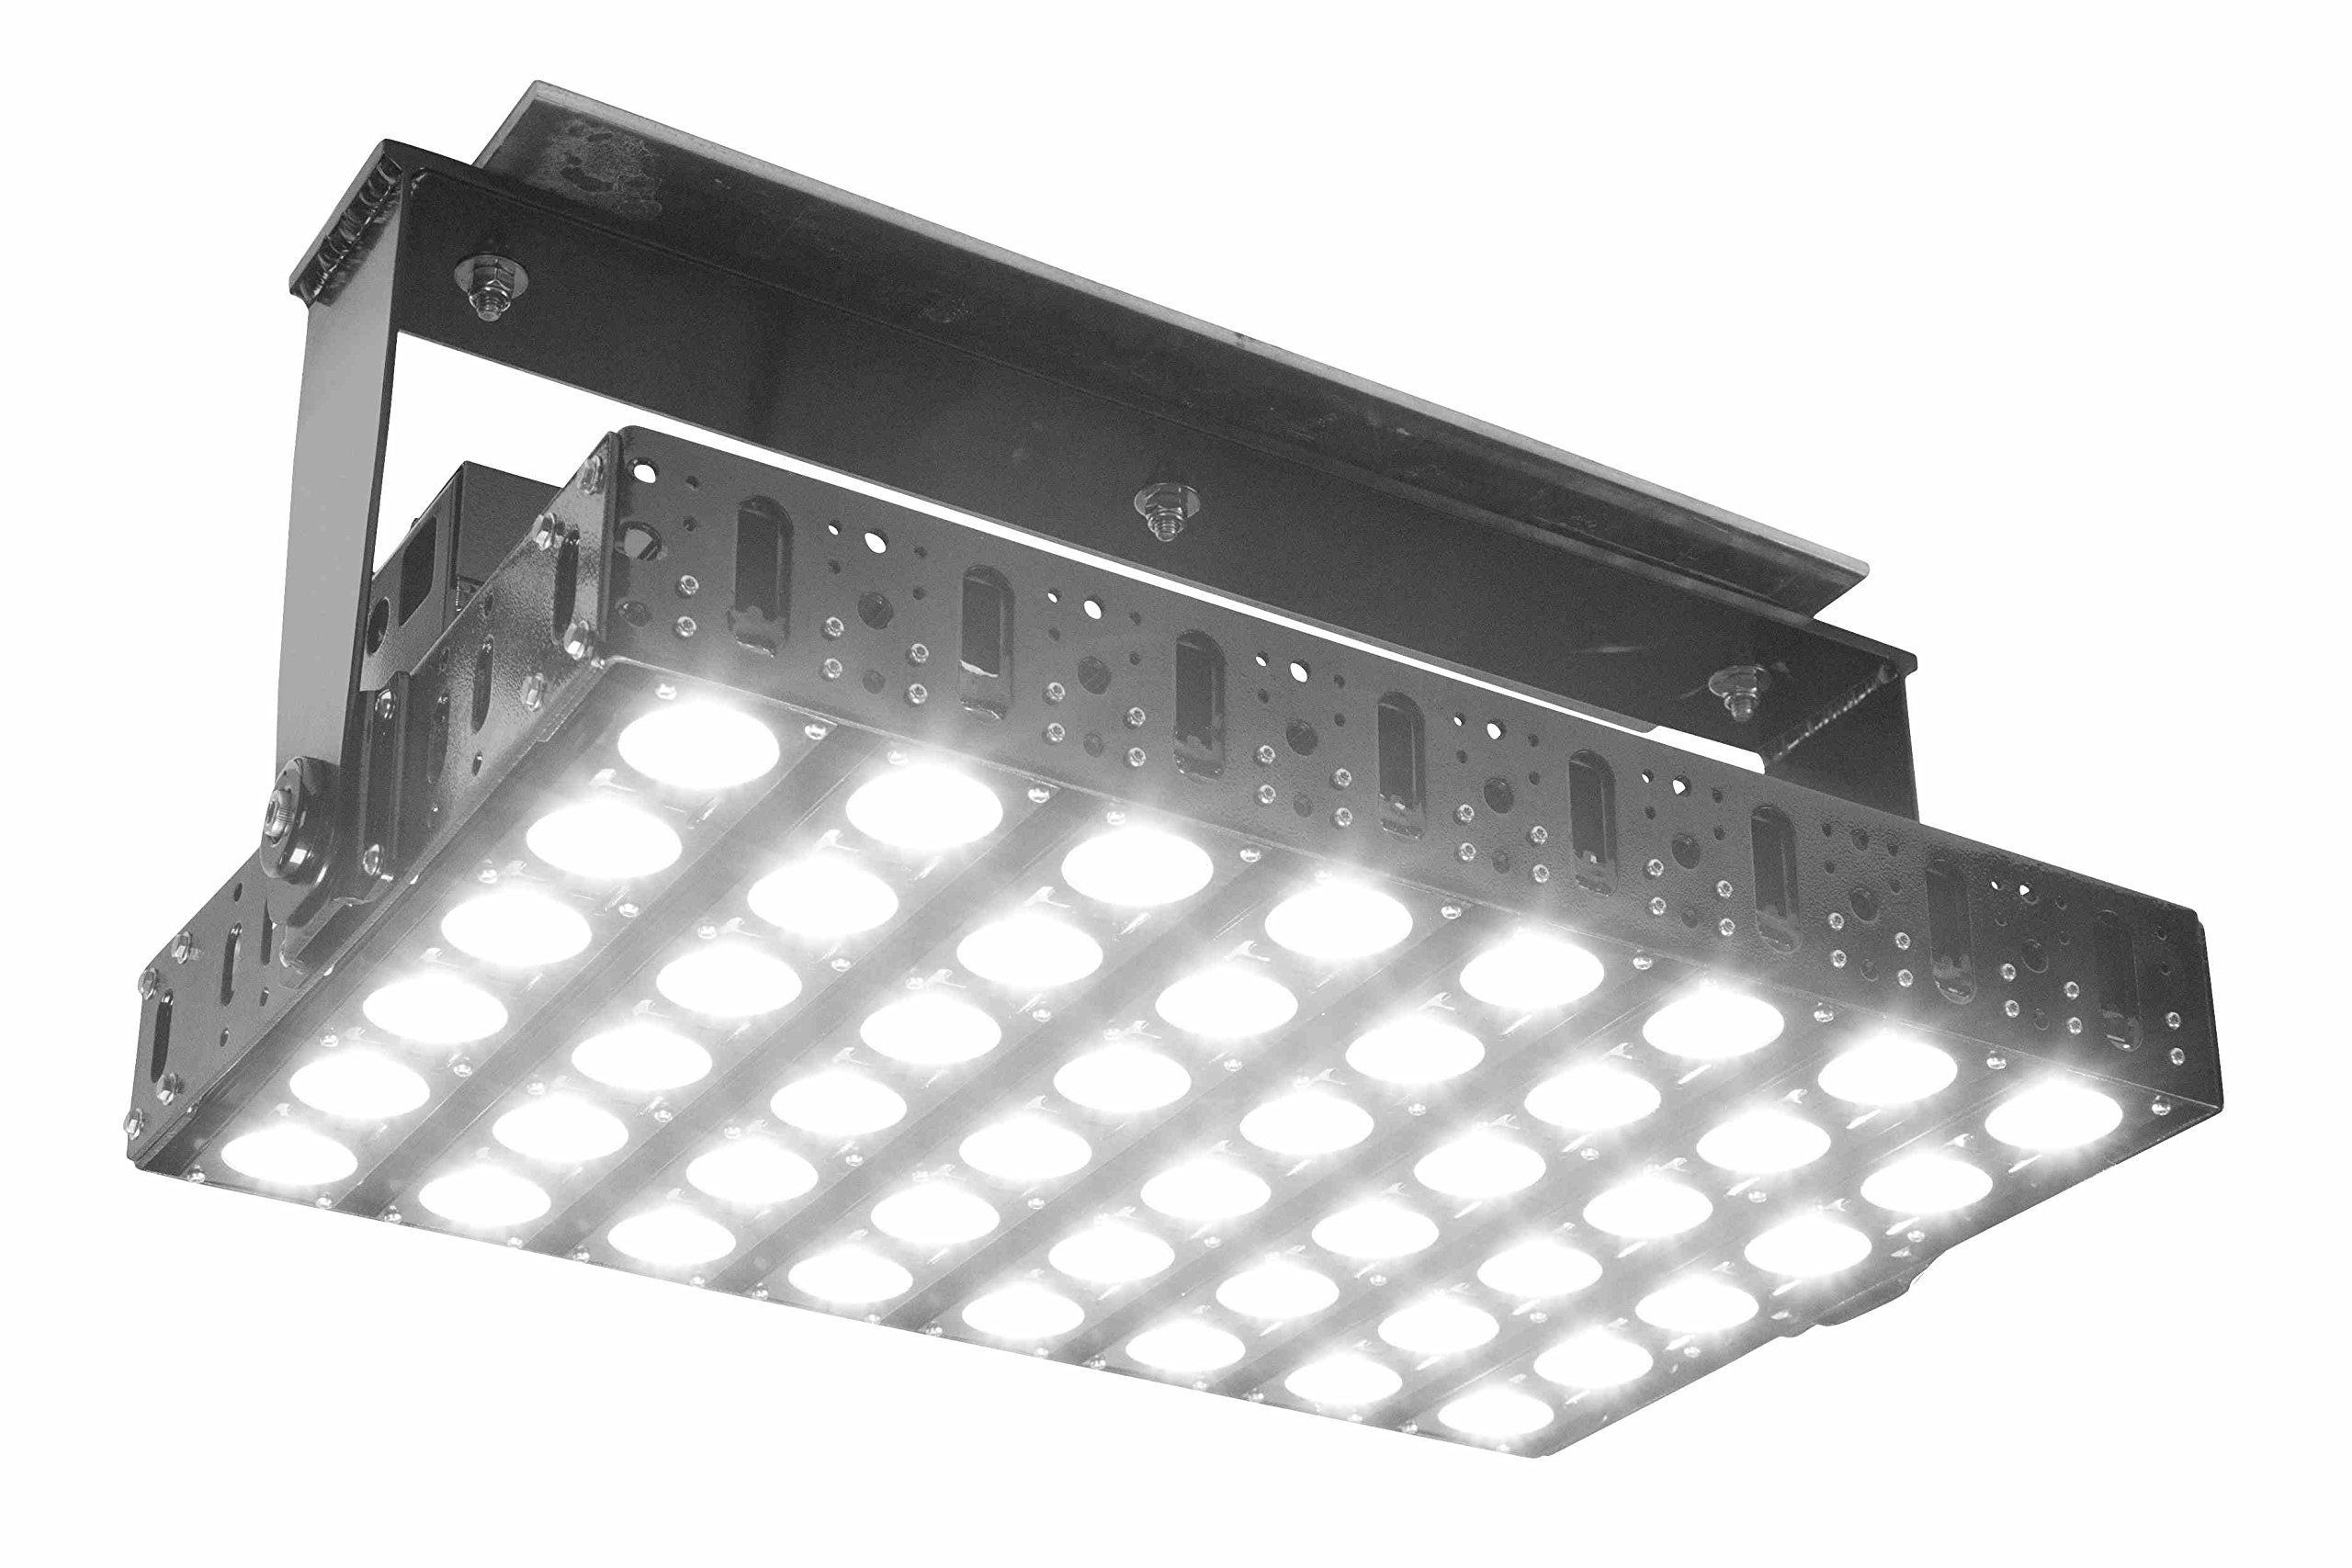 600 Watt High Bay LED Light - 78,000 Lumens - 480V AC - Stainless Steel Brackets - Crane Lighting(-60° Flood-5500K)